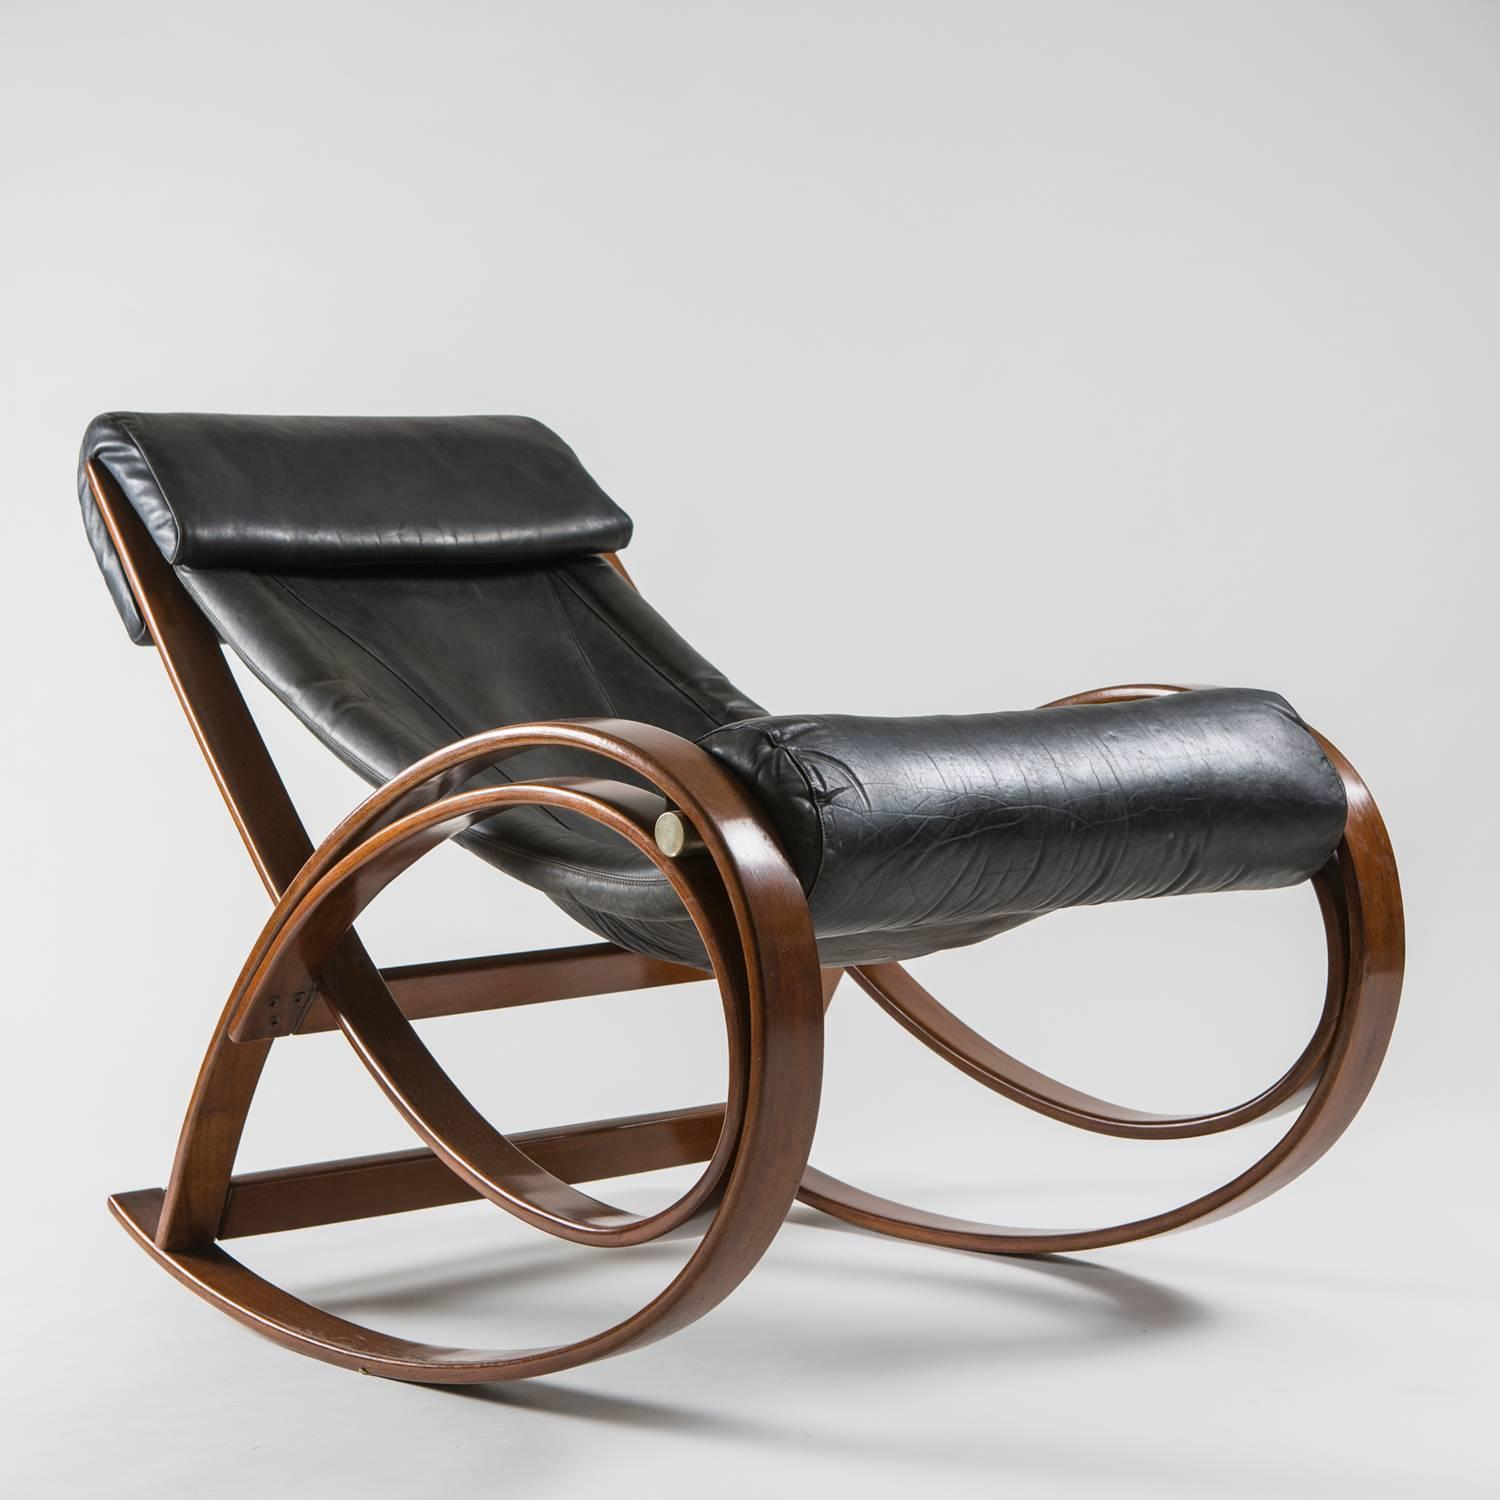 Superb img of Pics Photos Rocking Chair For 5 with #985C33 color and 1500x1500 pixels